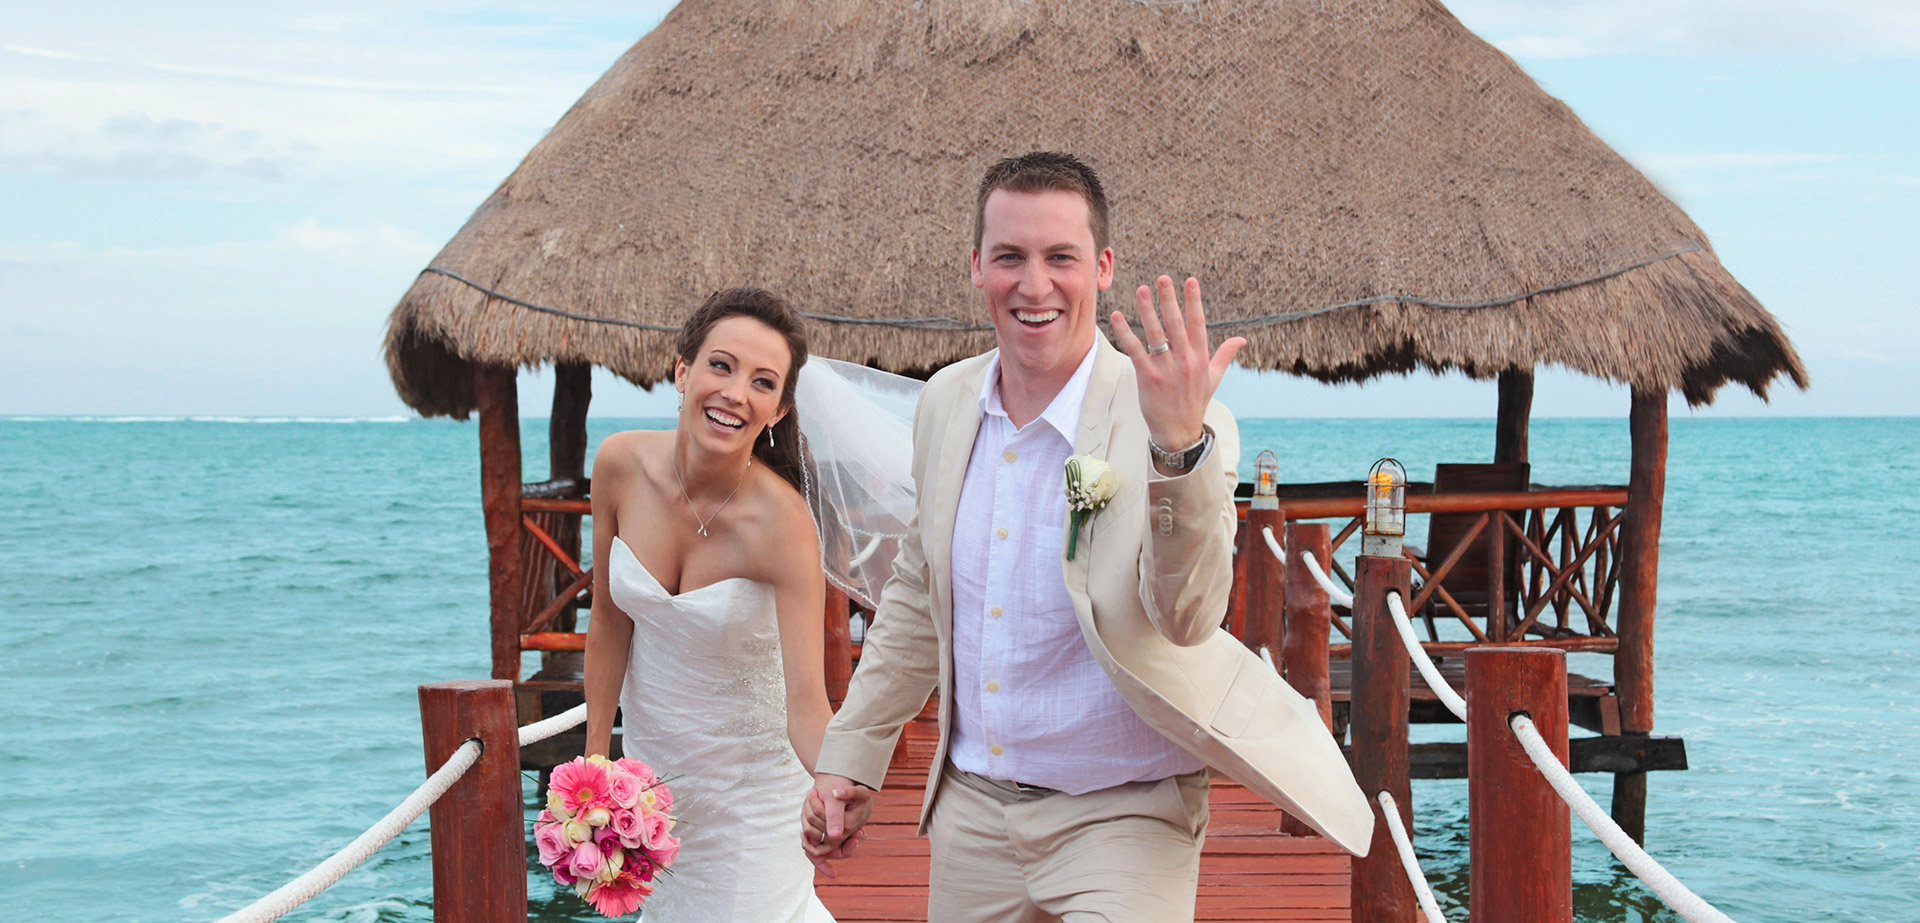 Wedding-Photography-in-cancun-and-playa-del-carmen